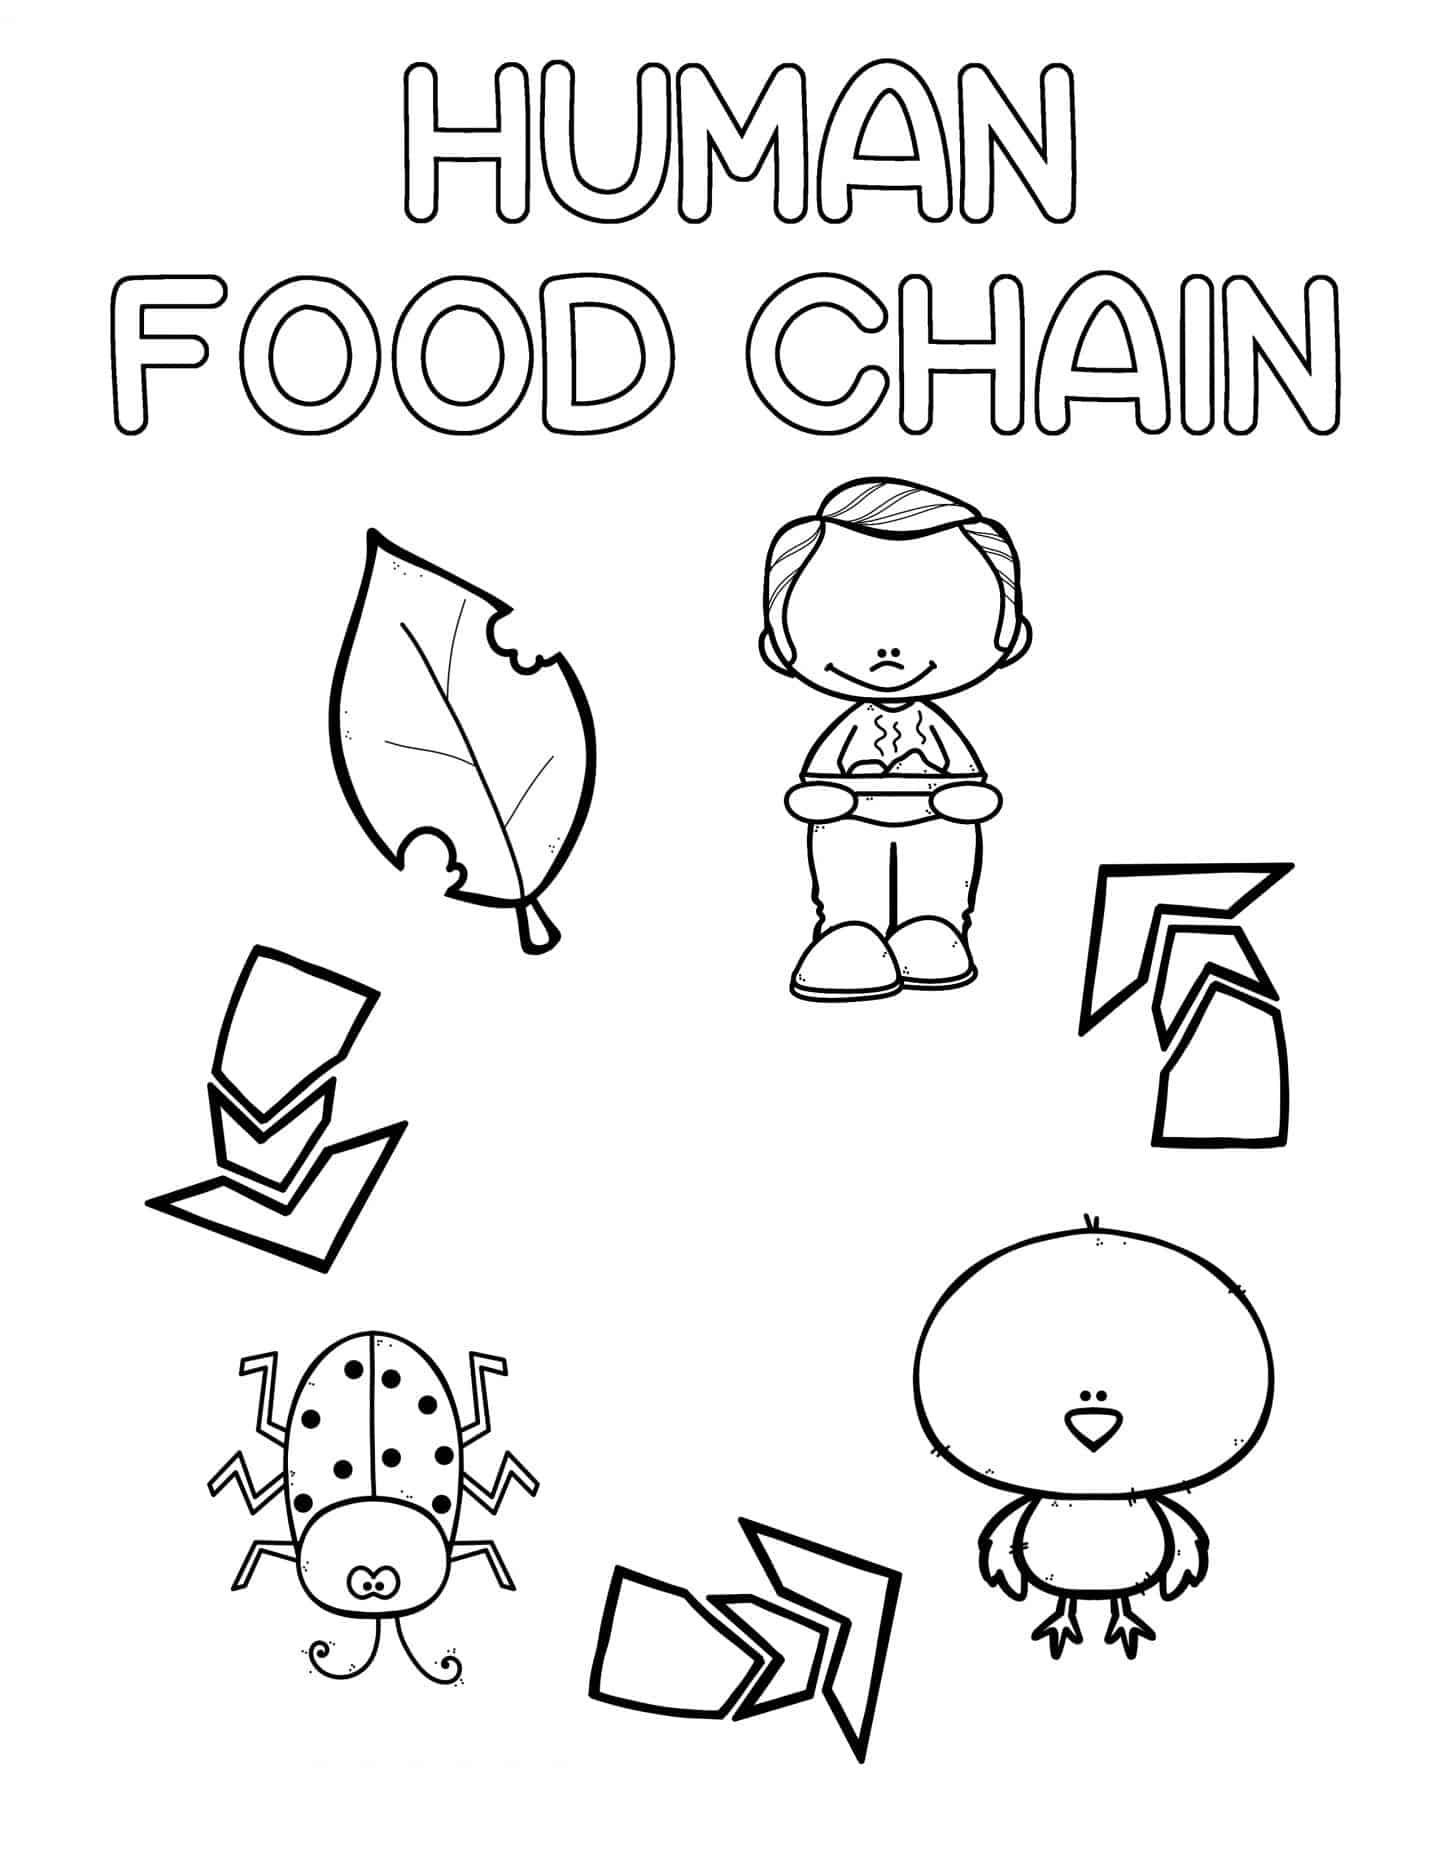 Preschool Coloring Pages Human Food Chain